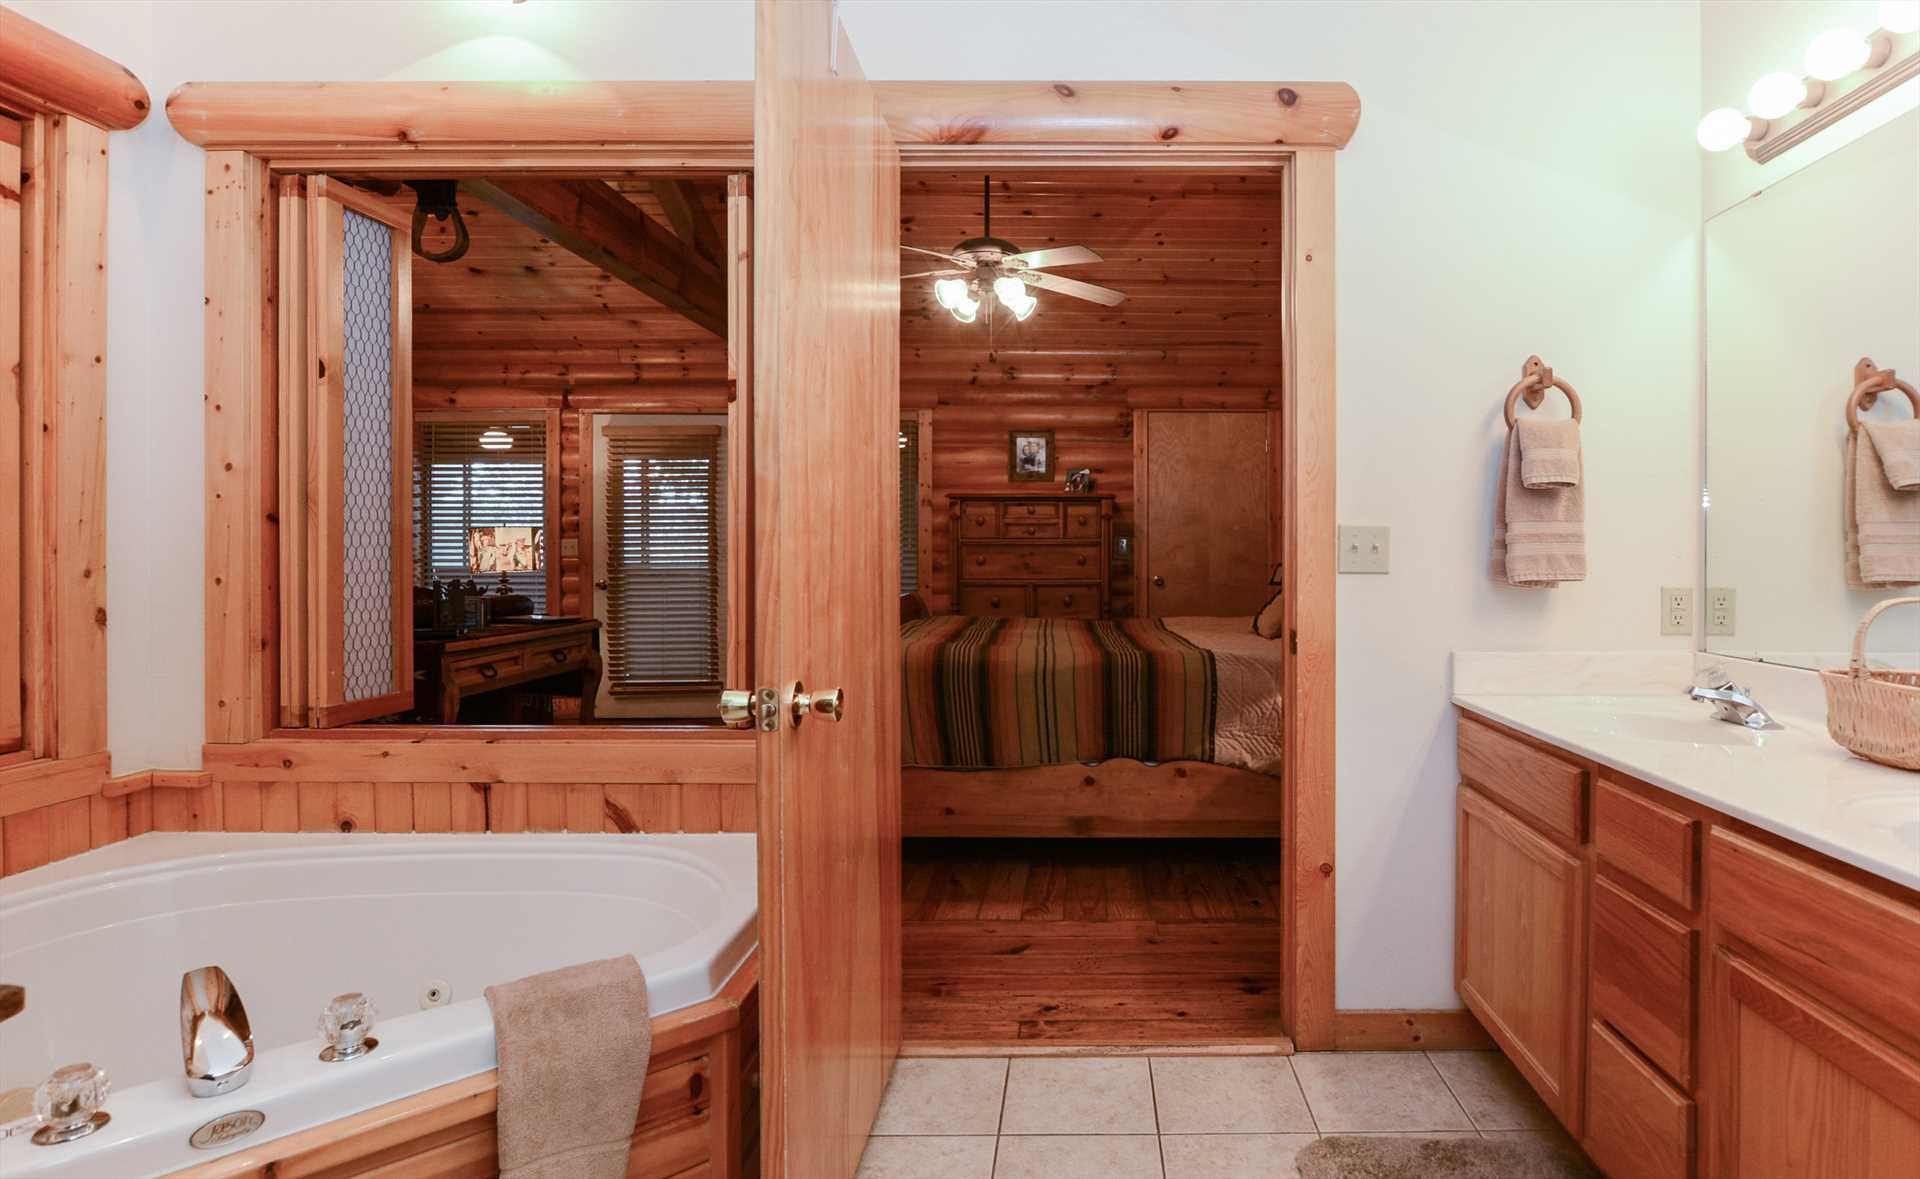 The large whirlpool is a highlight of this adorable cabin.